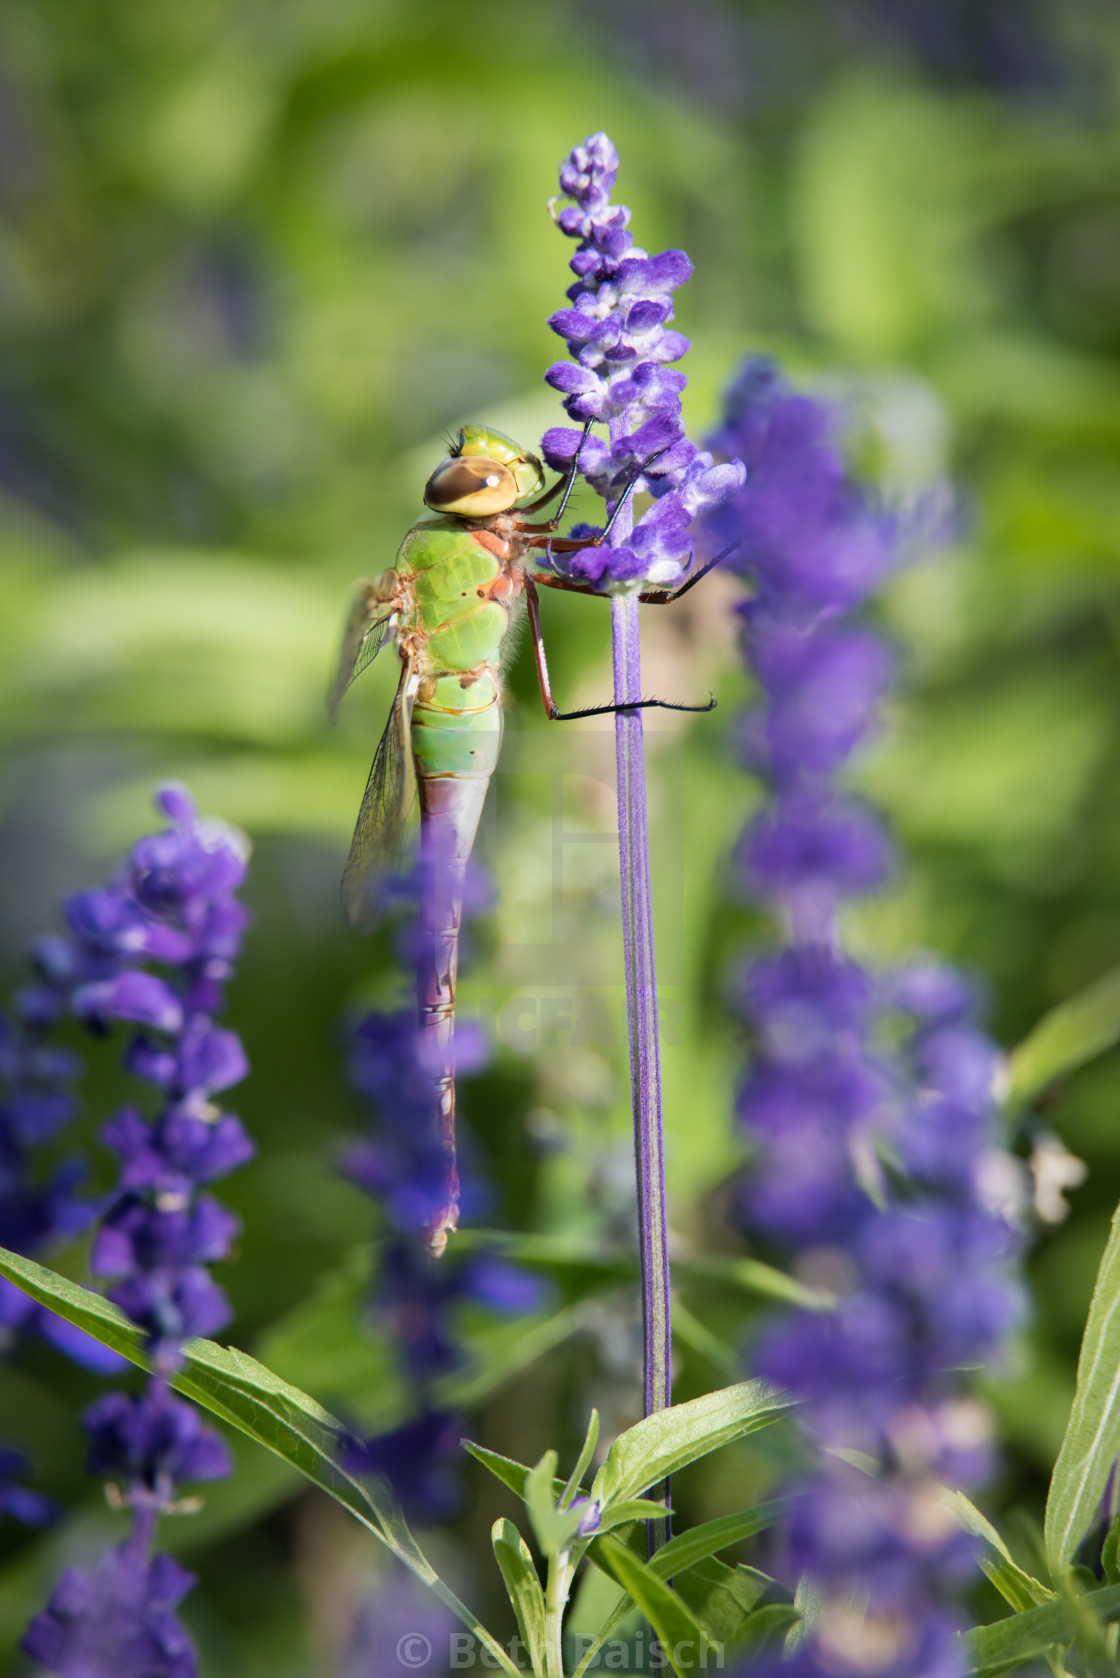 """Common Green Darner Dragonfly Perched on Lavender Flowers"" stock image"